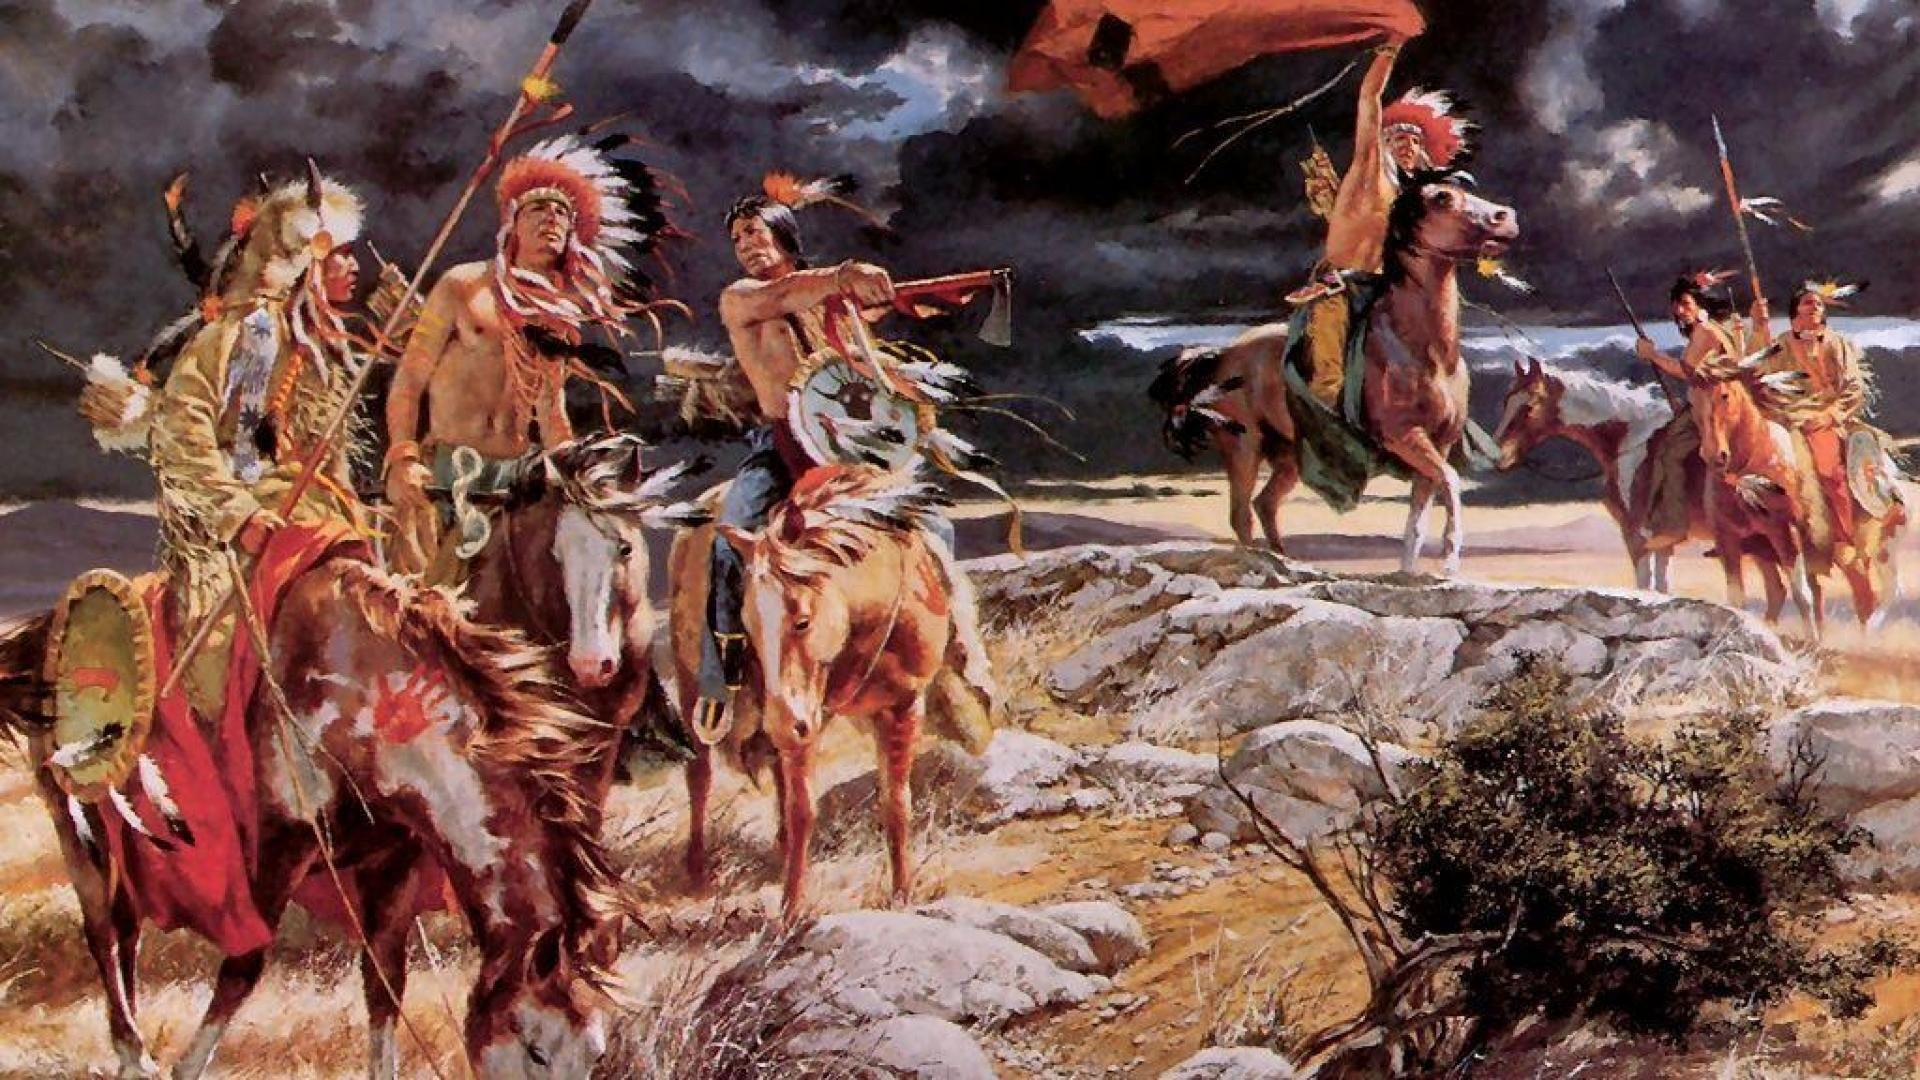 an introduction to american indian life and culture Explore native american culture in new mexico new mexico is home to 22 tribes, including the navajo nation, jicarilla apache, mescalero apache and 19 pueblos each tribe is unique and has its own traditional language, customs, values, prayers, songs, ceremonies, attire and way of life.